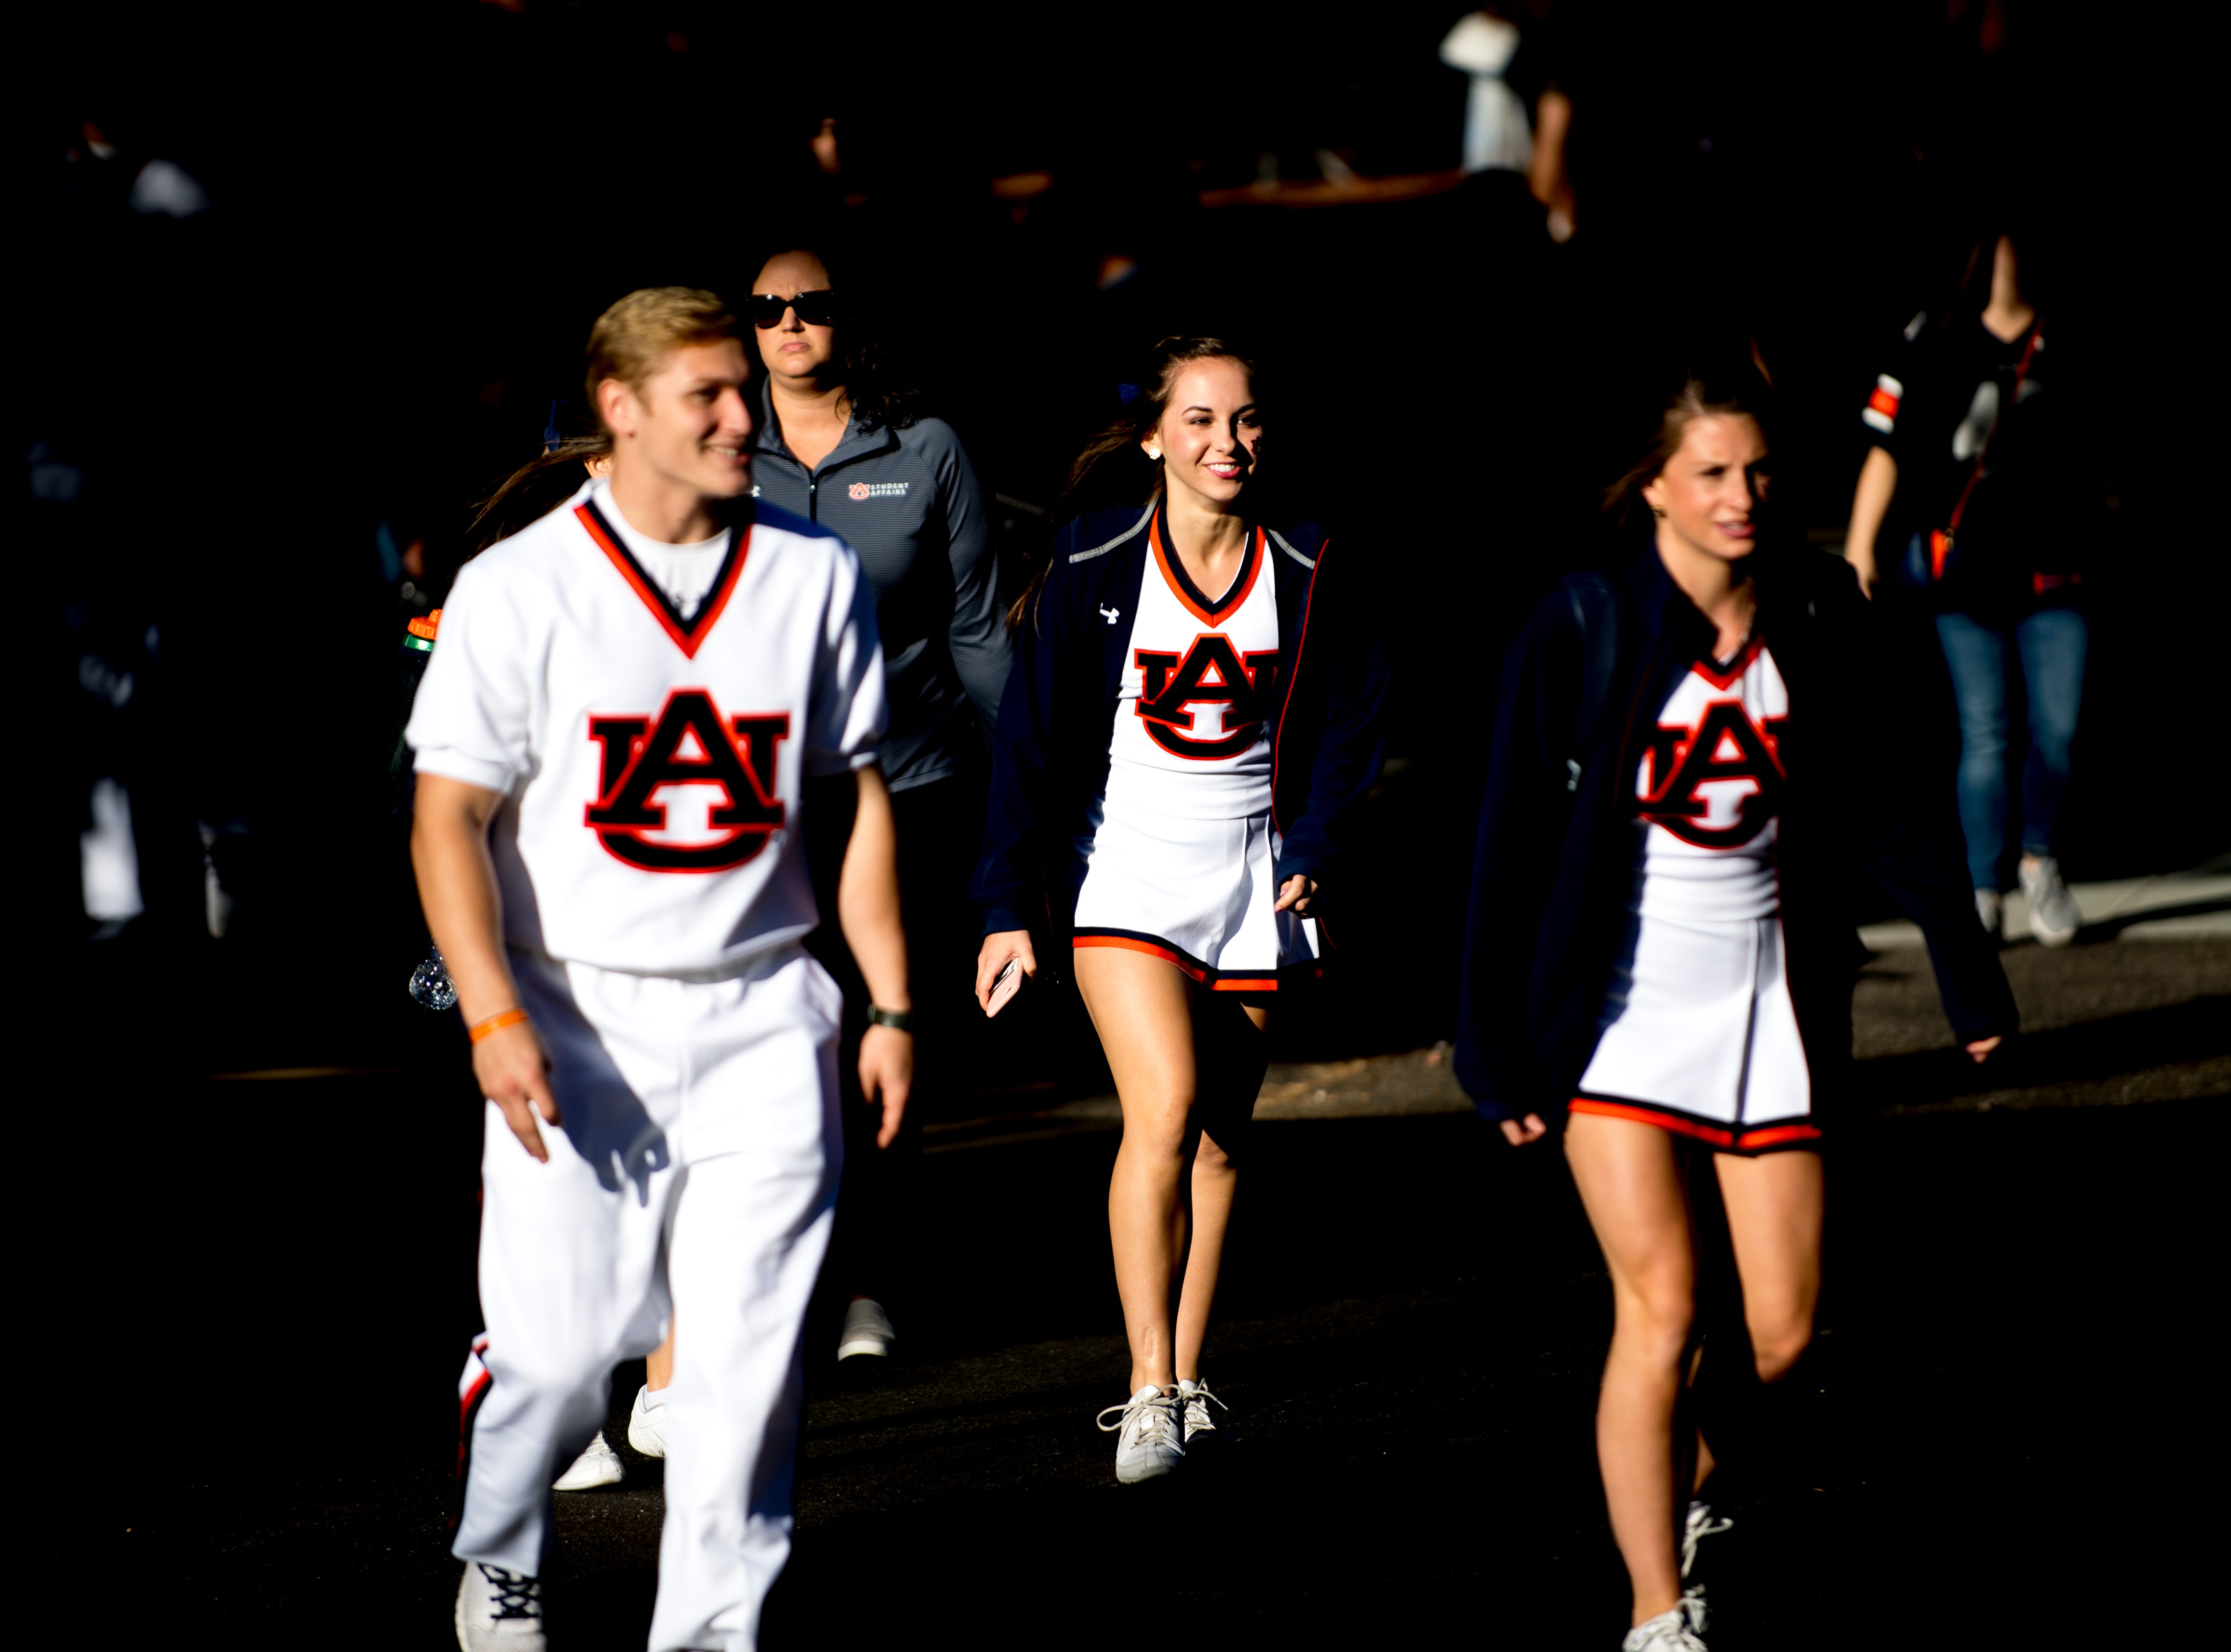 Auburn cheerleaders arrive at the stadium during a game between Tennessee and Auburn at Jordan-Hare Stadium in Auburn, Alabama on Saturday, October 13, 2018.